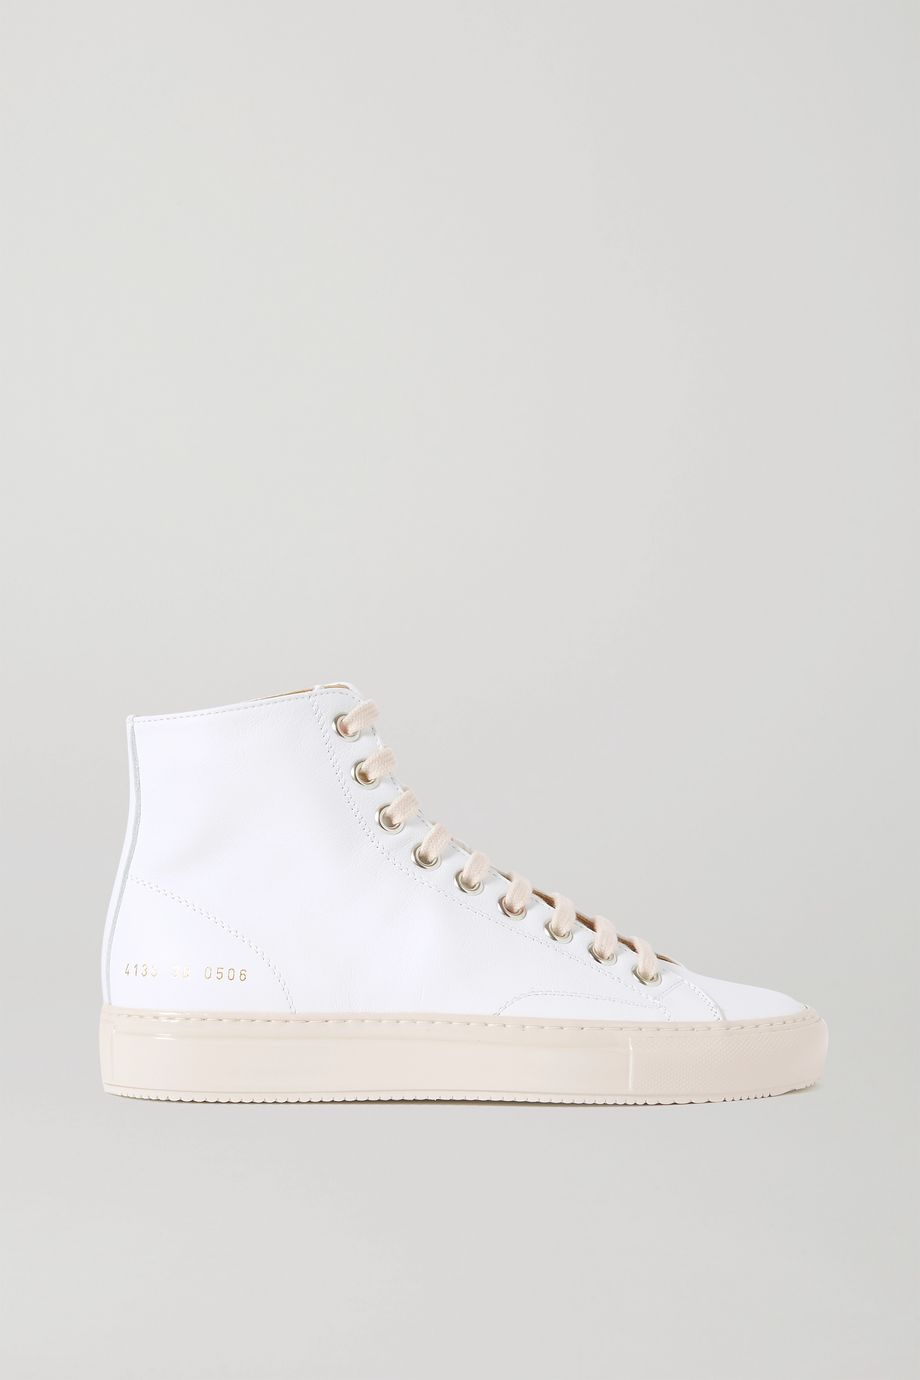 Common Projects Tournament 皮革高帮运动鞋